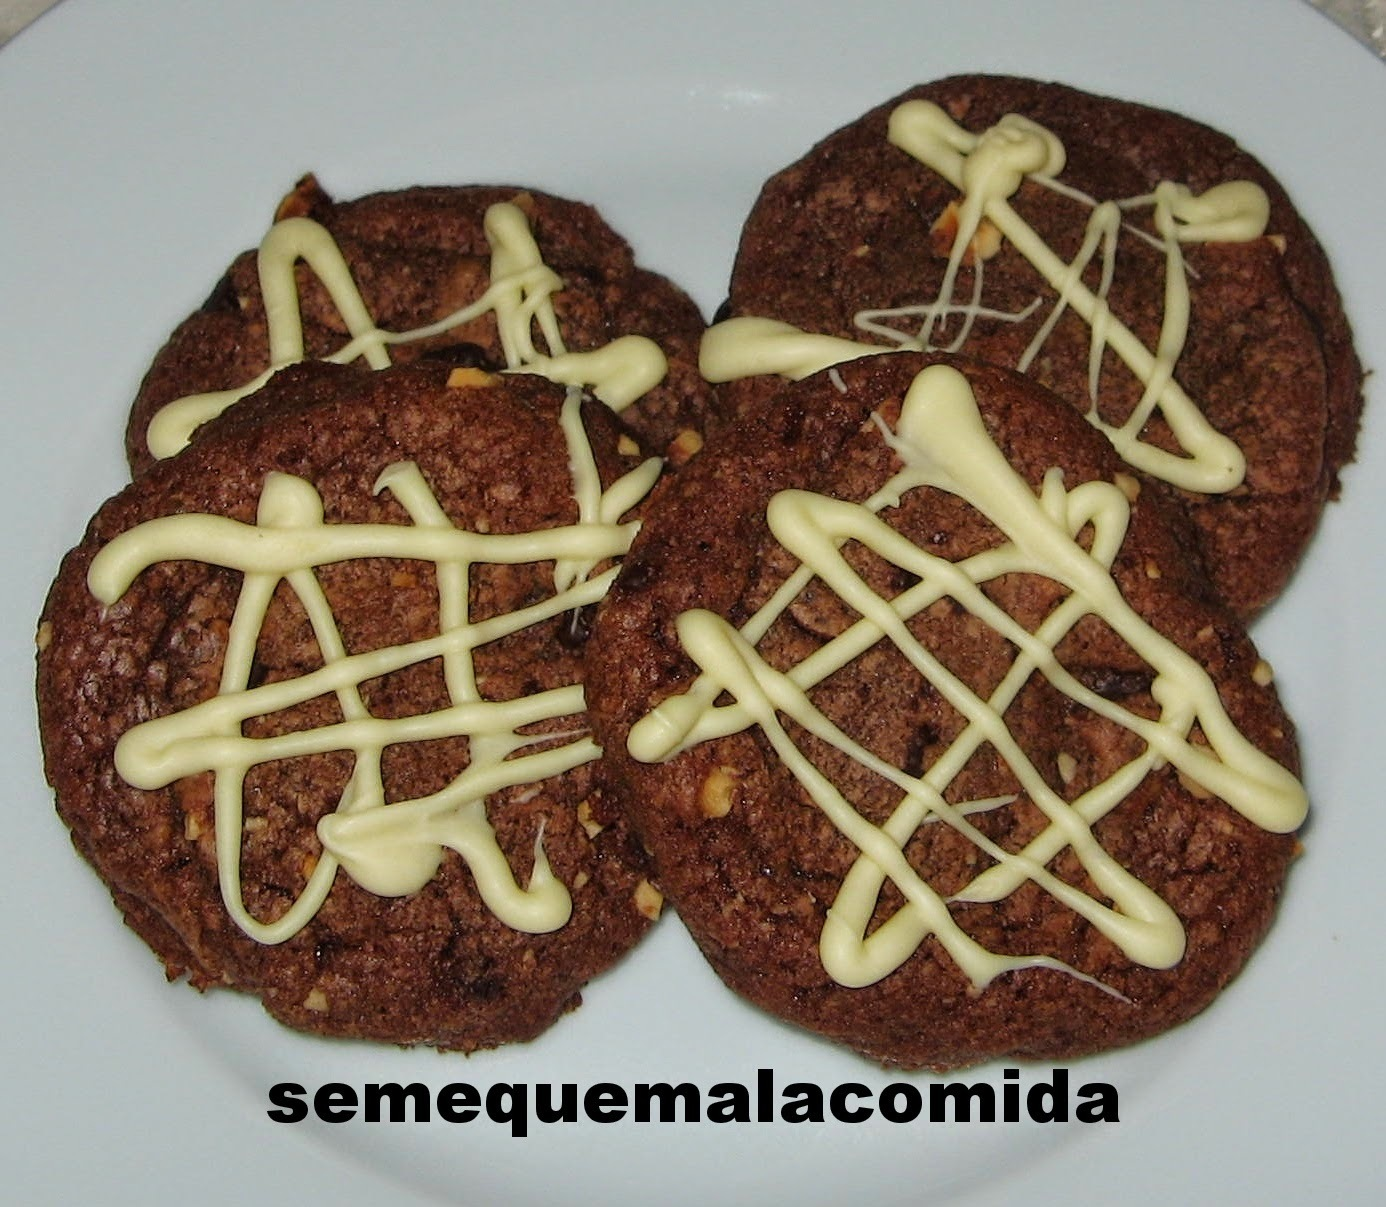 GALLETAS DE AVELLANA Y CHOCOLATE (CON NUTELLA)